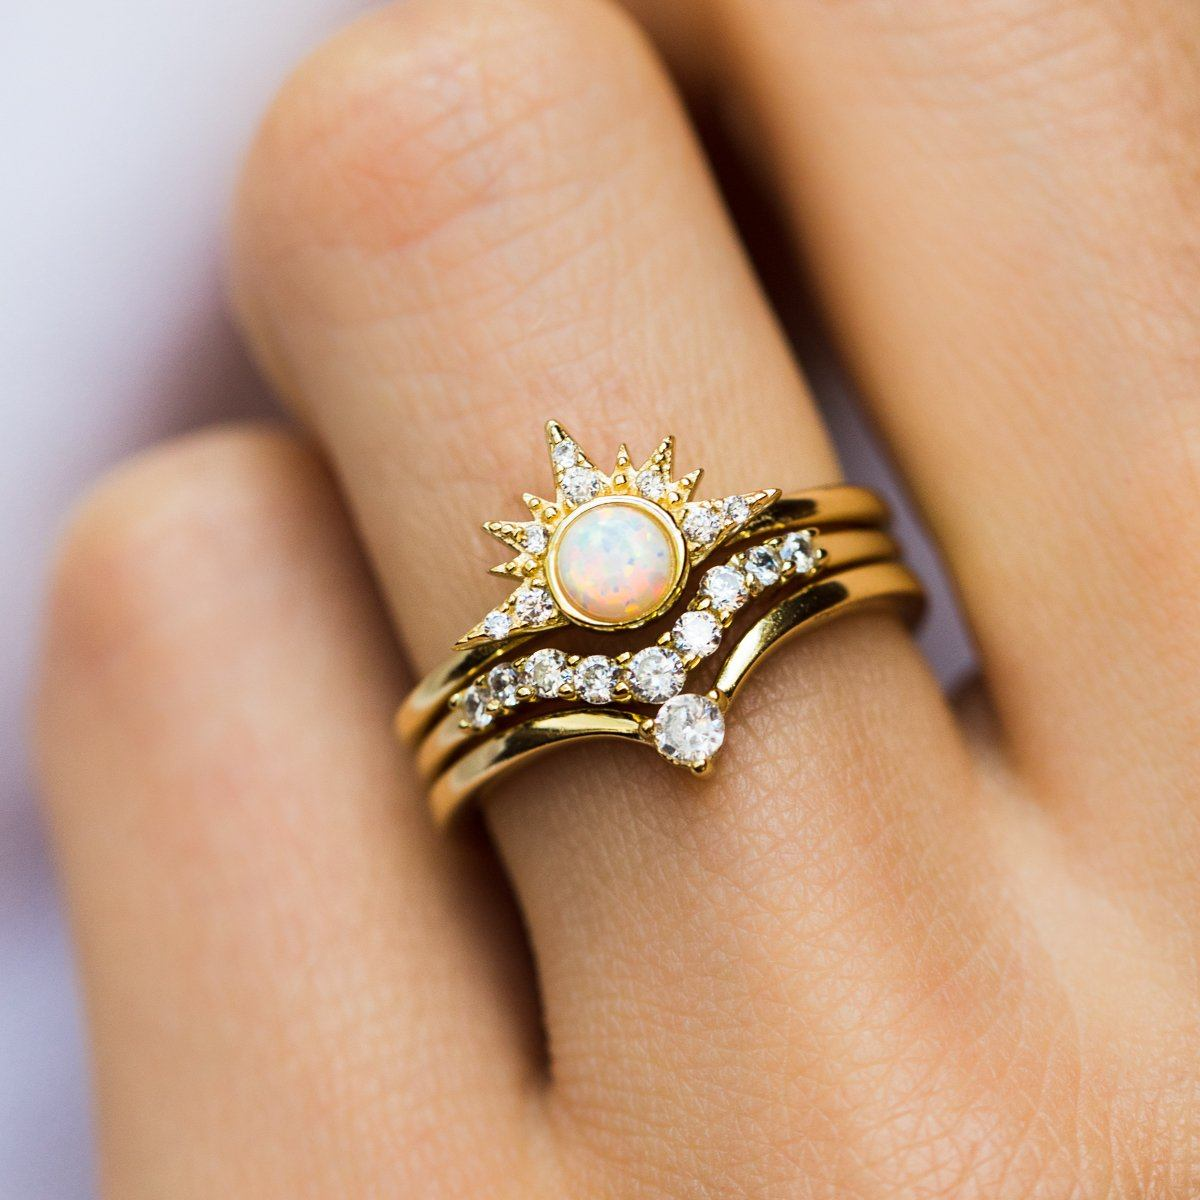 Local Eclectic Starburst Stacking Ring Set In Gold With